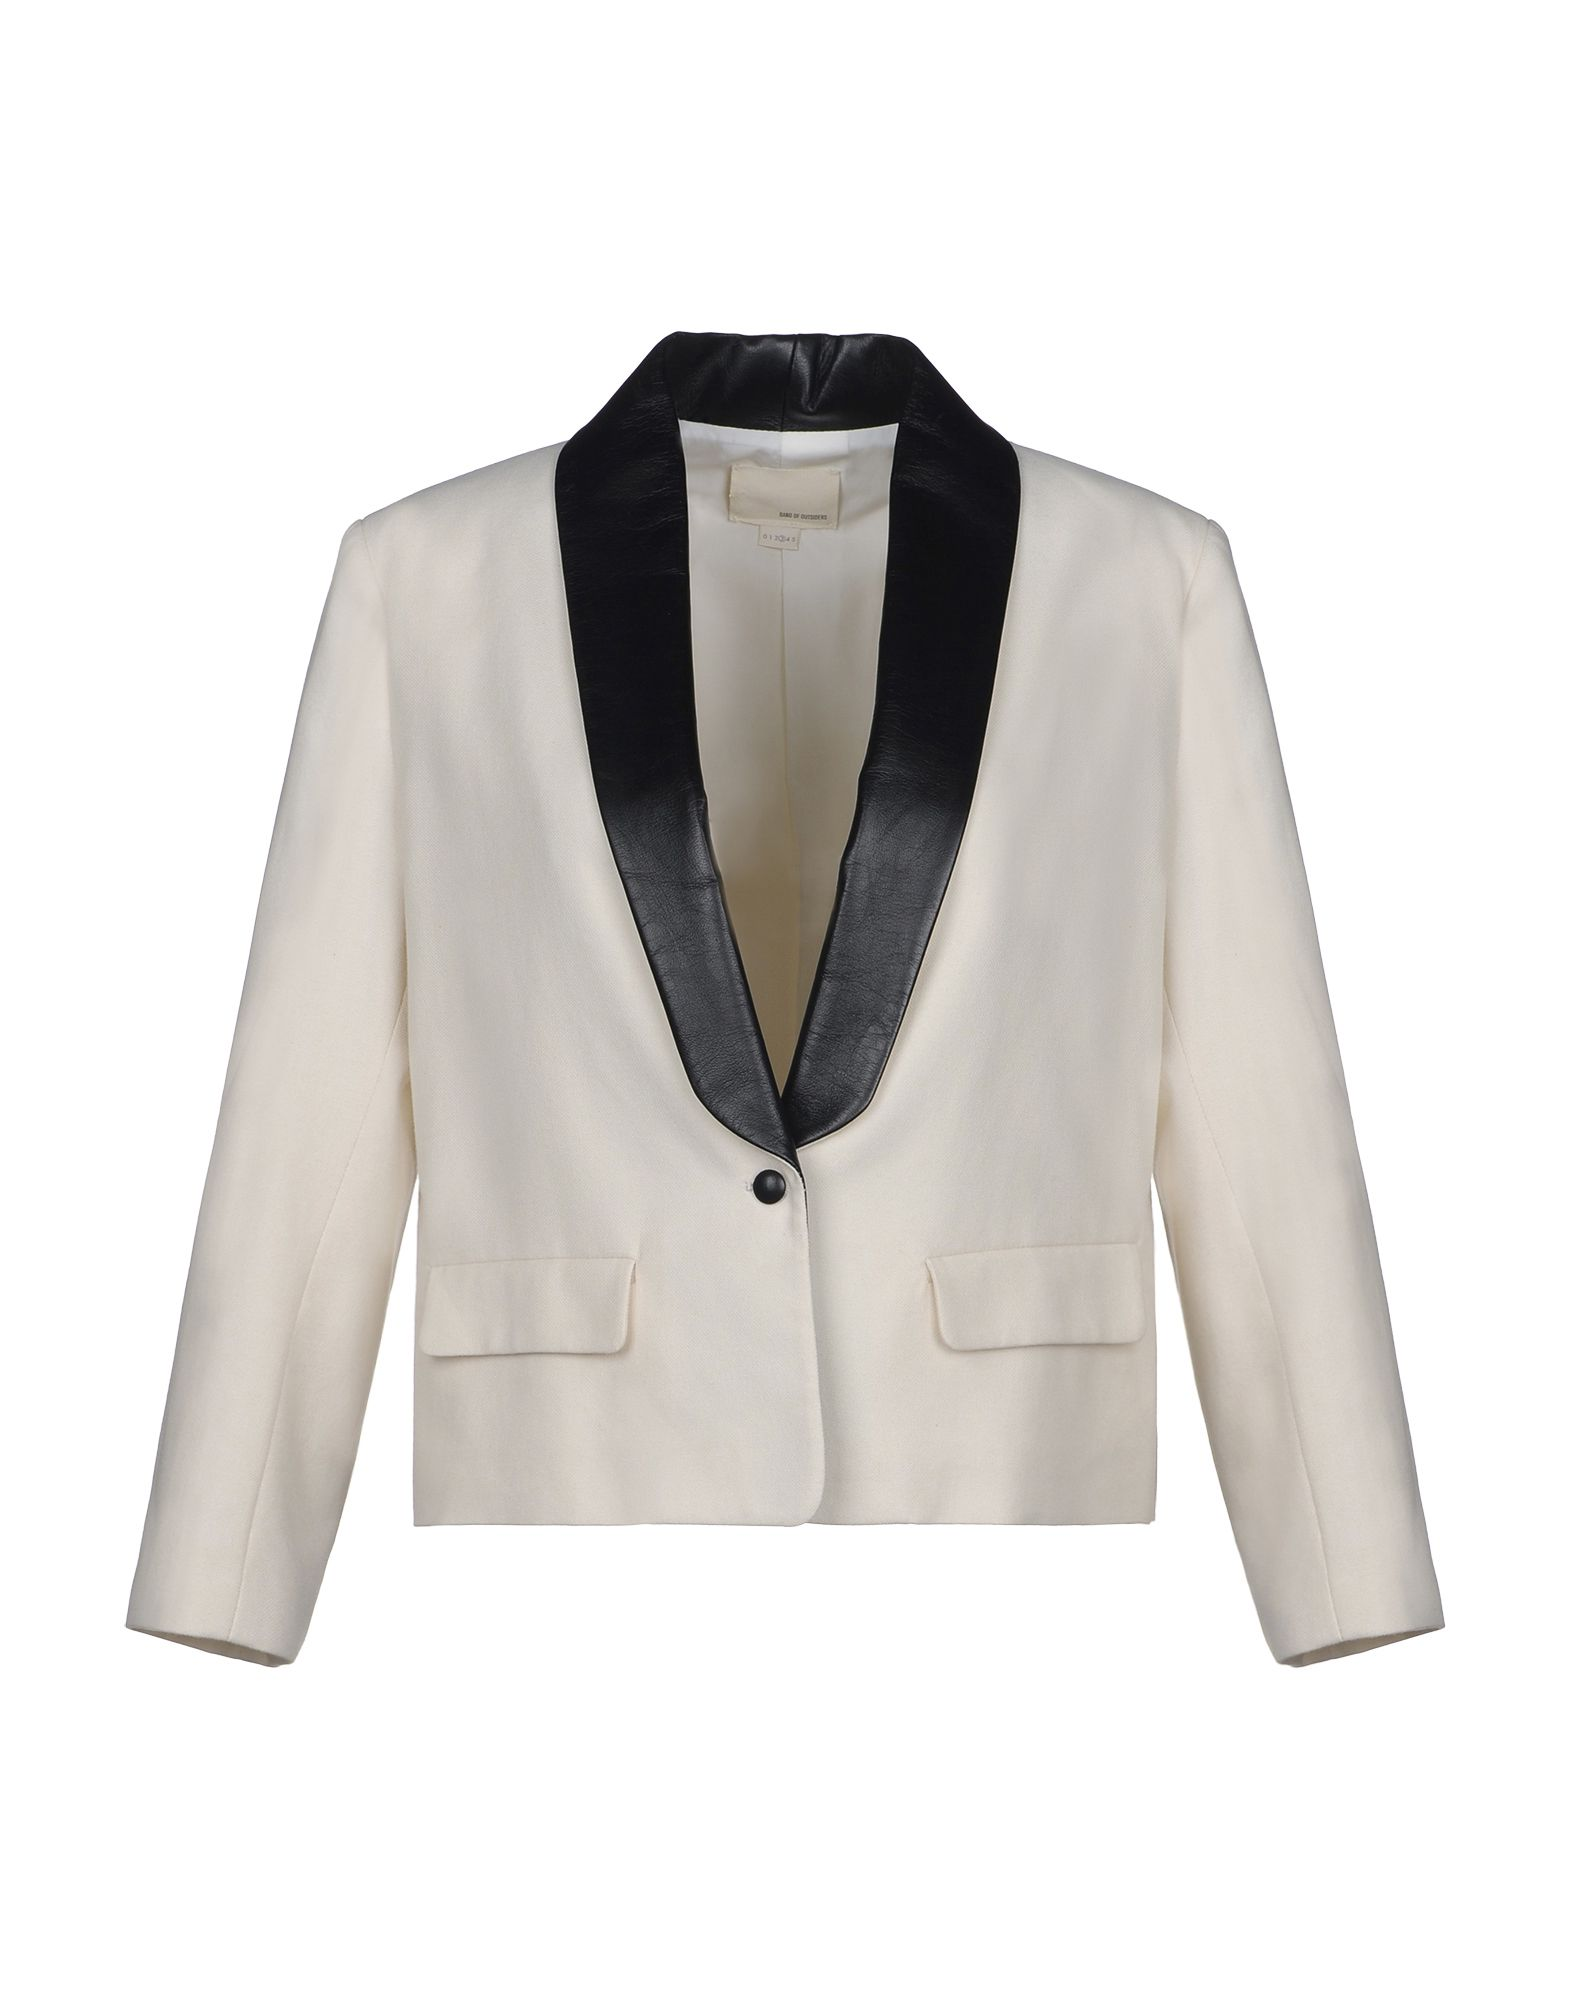 BAND OF OUTSIDERS Blazer in Ivory